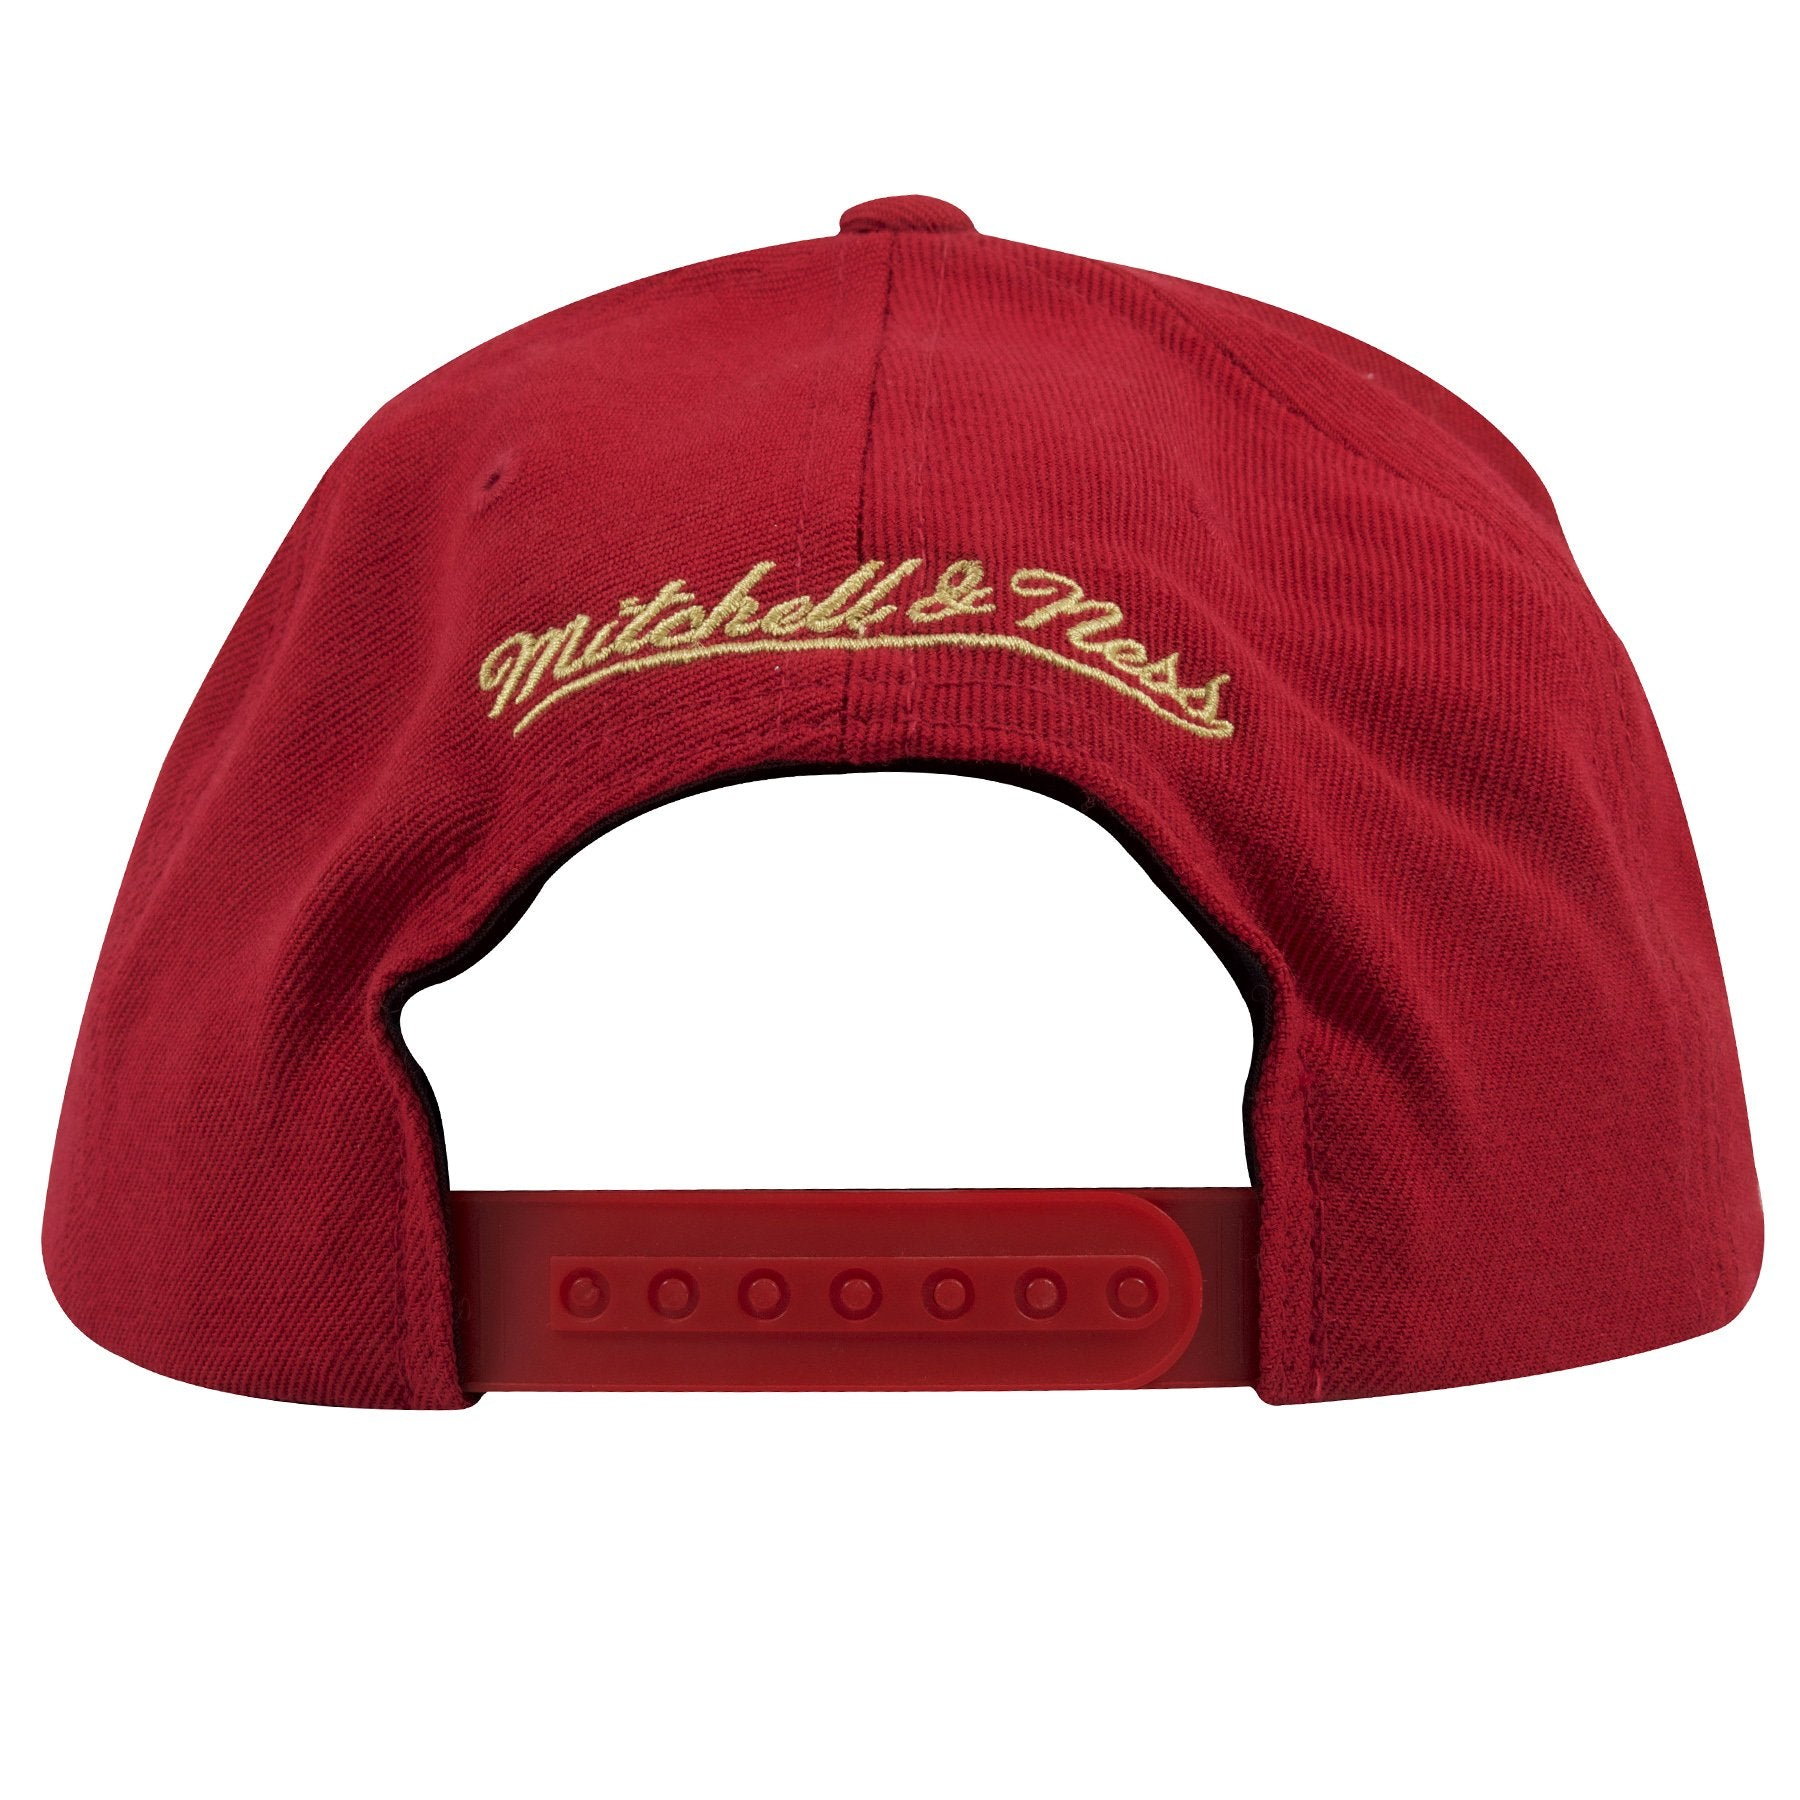 21230e2001344 ... The back side of this Mitchell and Ness San Francisco 49ers vintage  snapback hat shows the ...